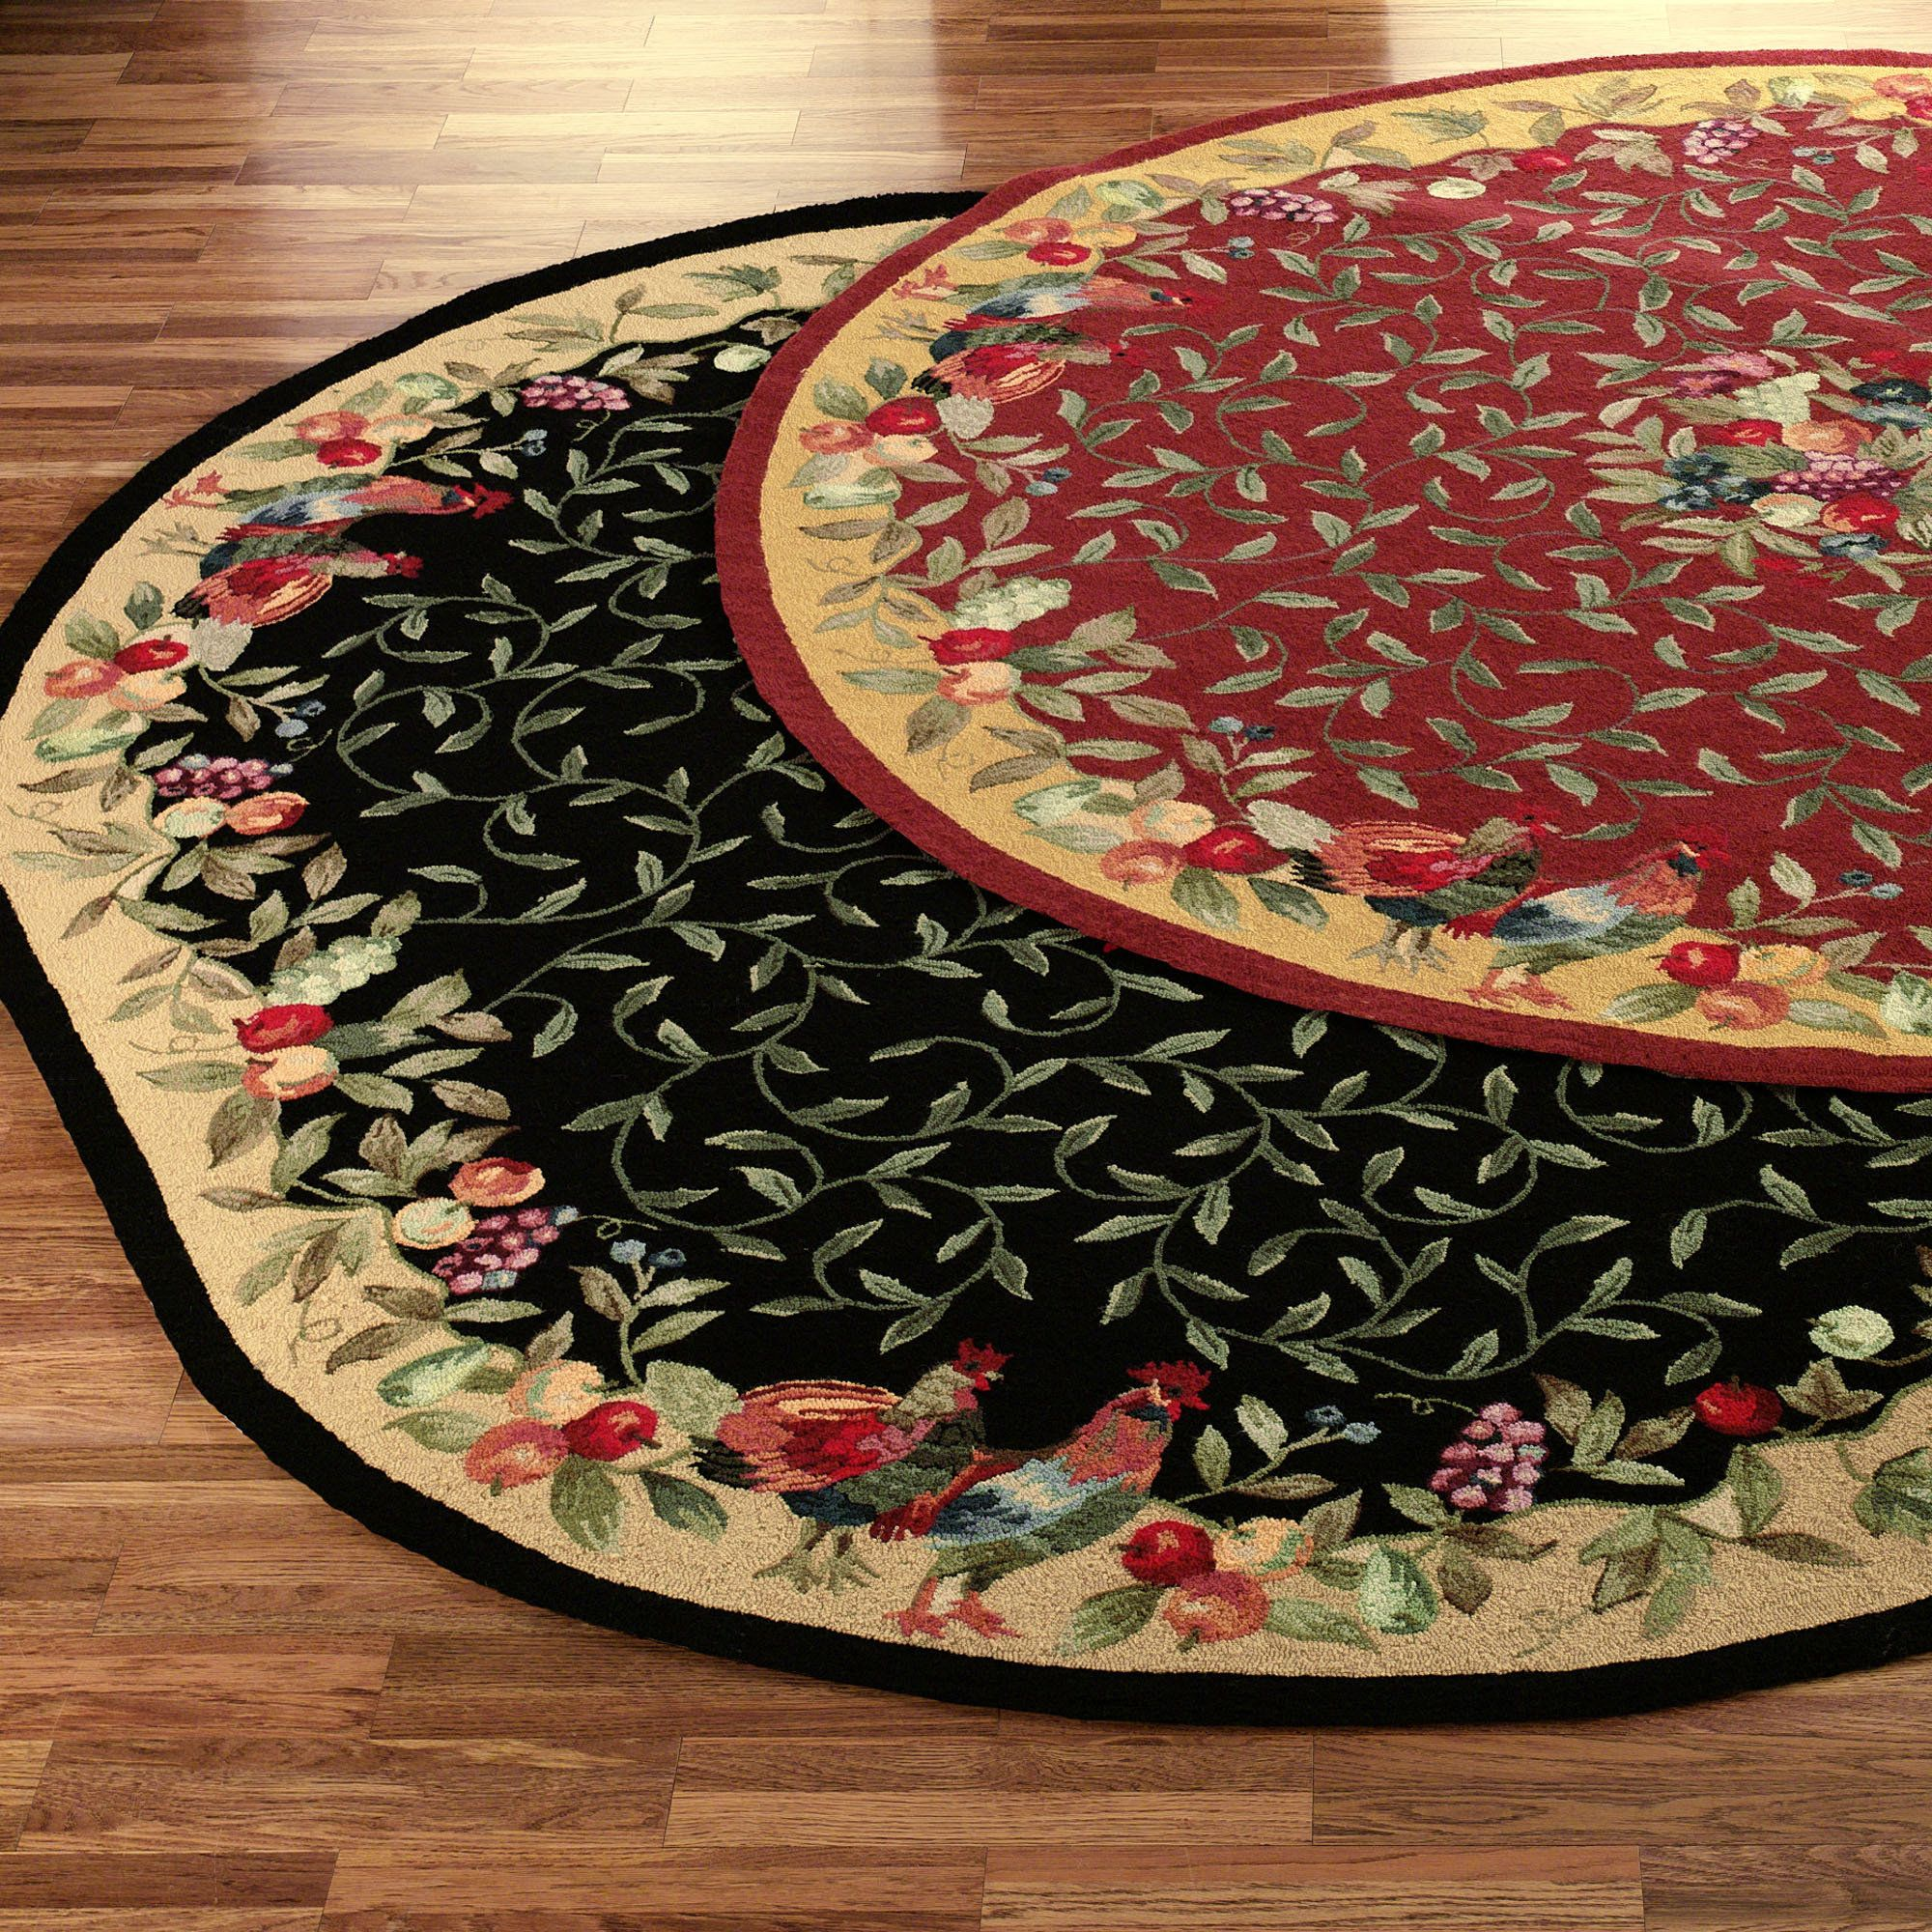 Print Of Rooster Kitchen Rugs Creating A Country Nuance